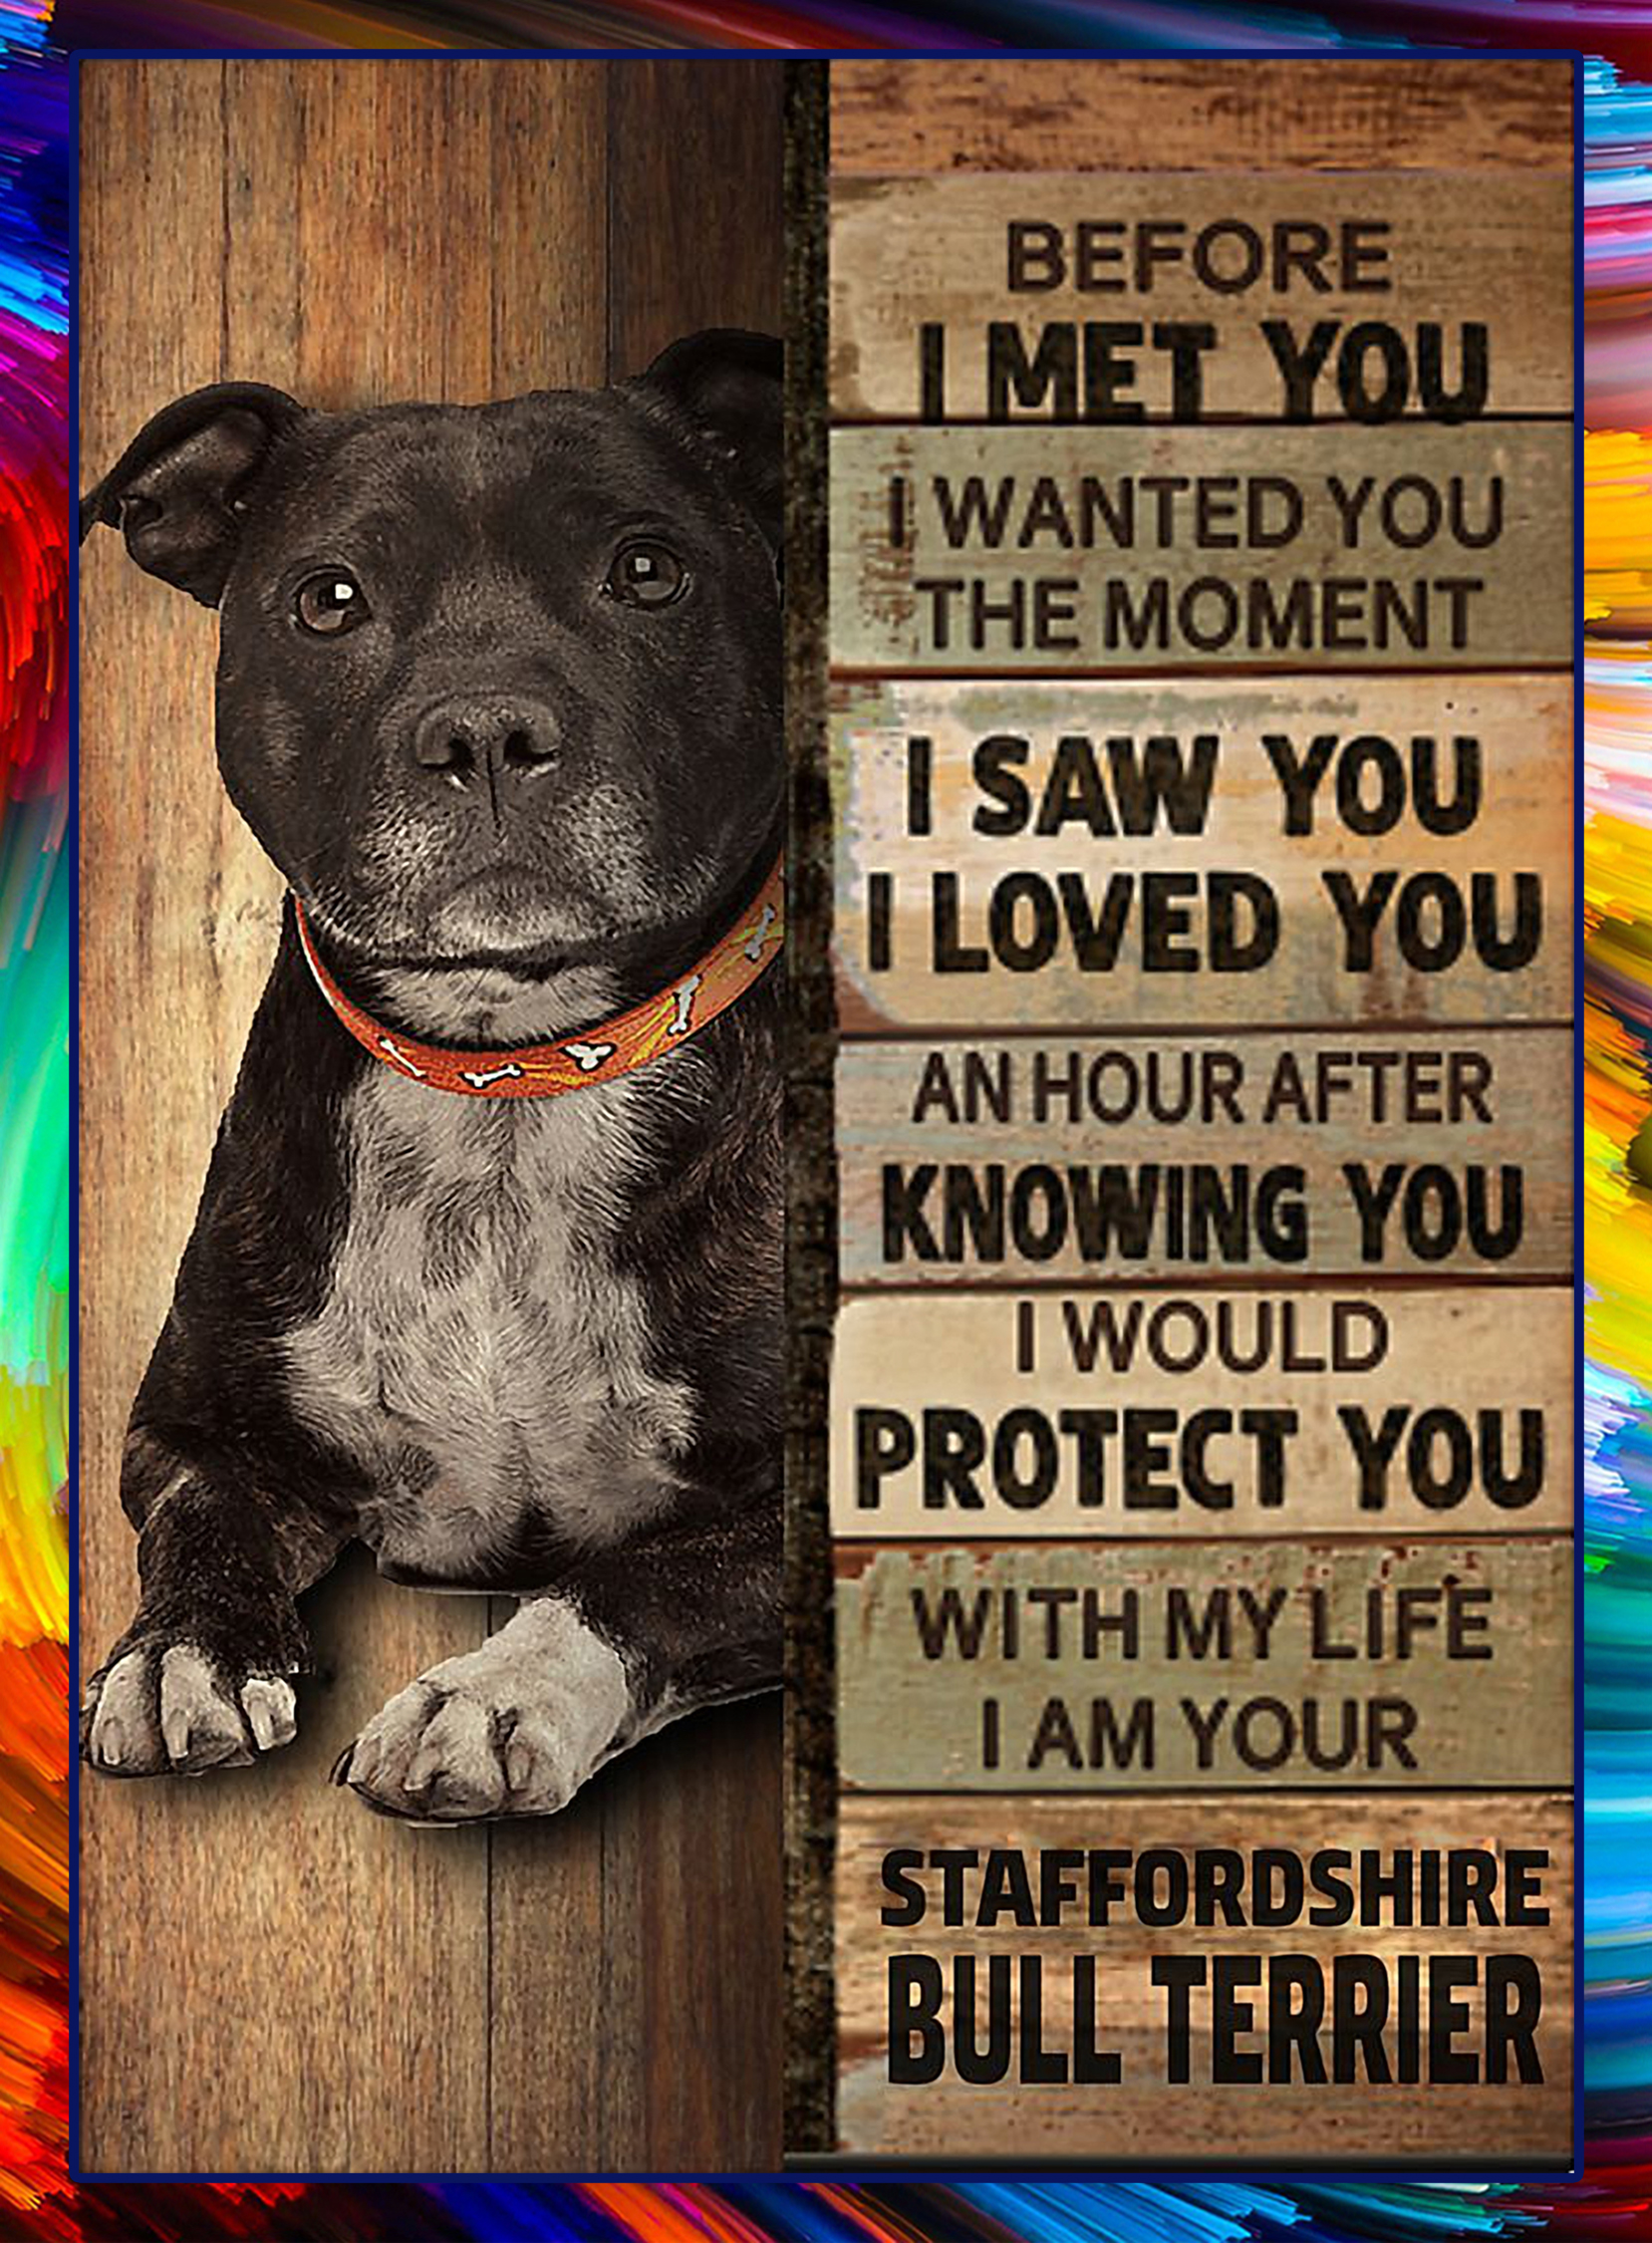 Staffordshire bull terrier before I met you poster - A1